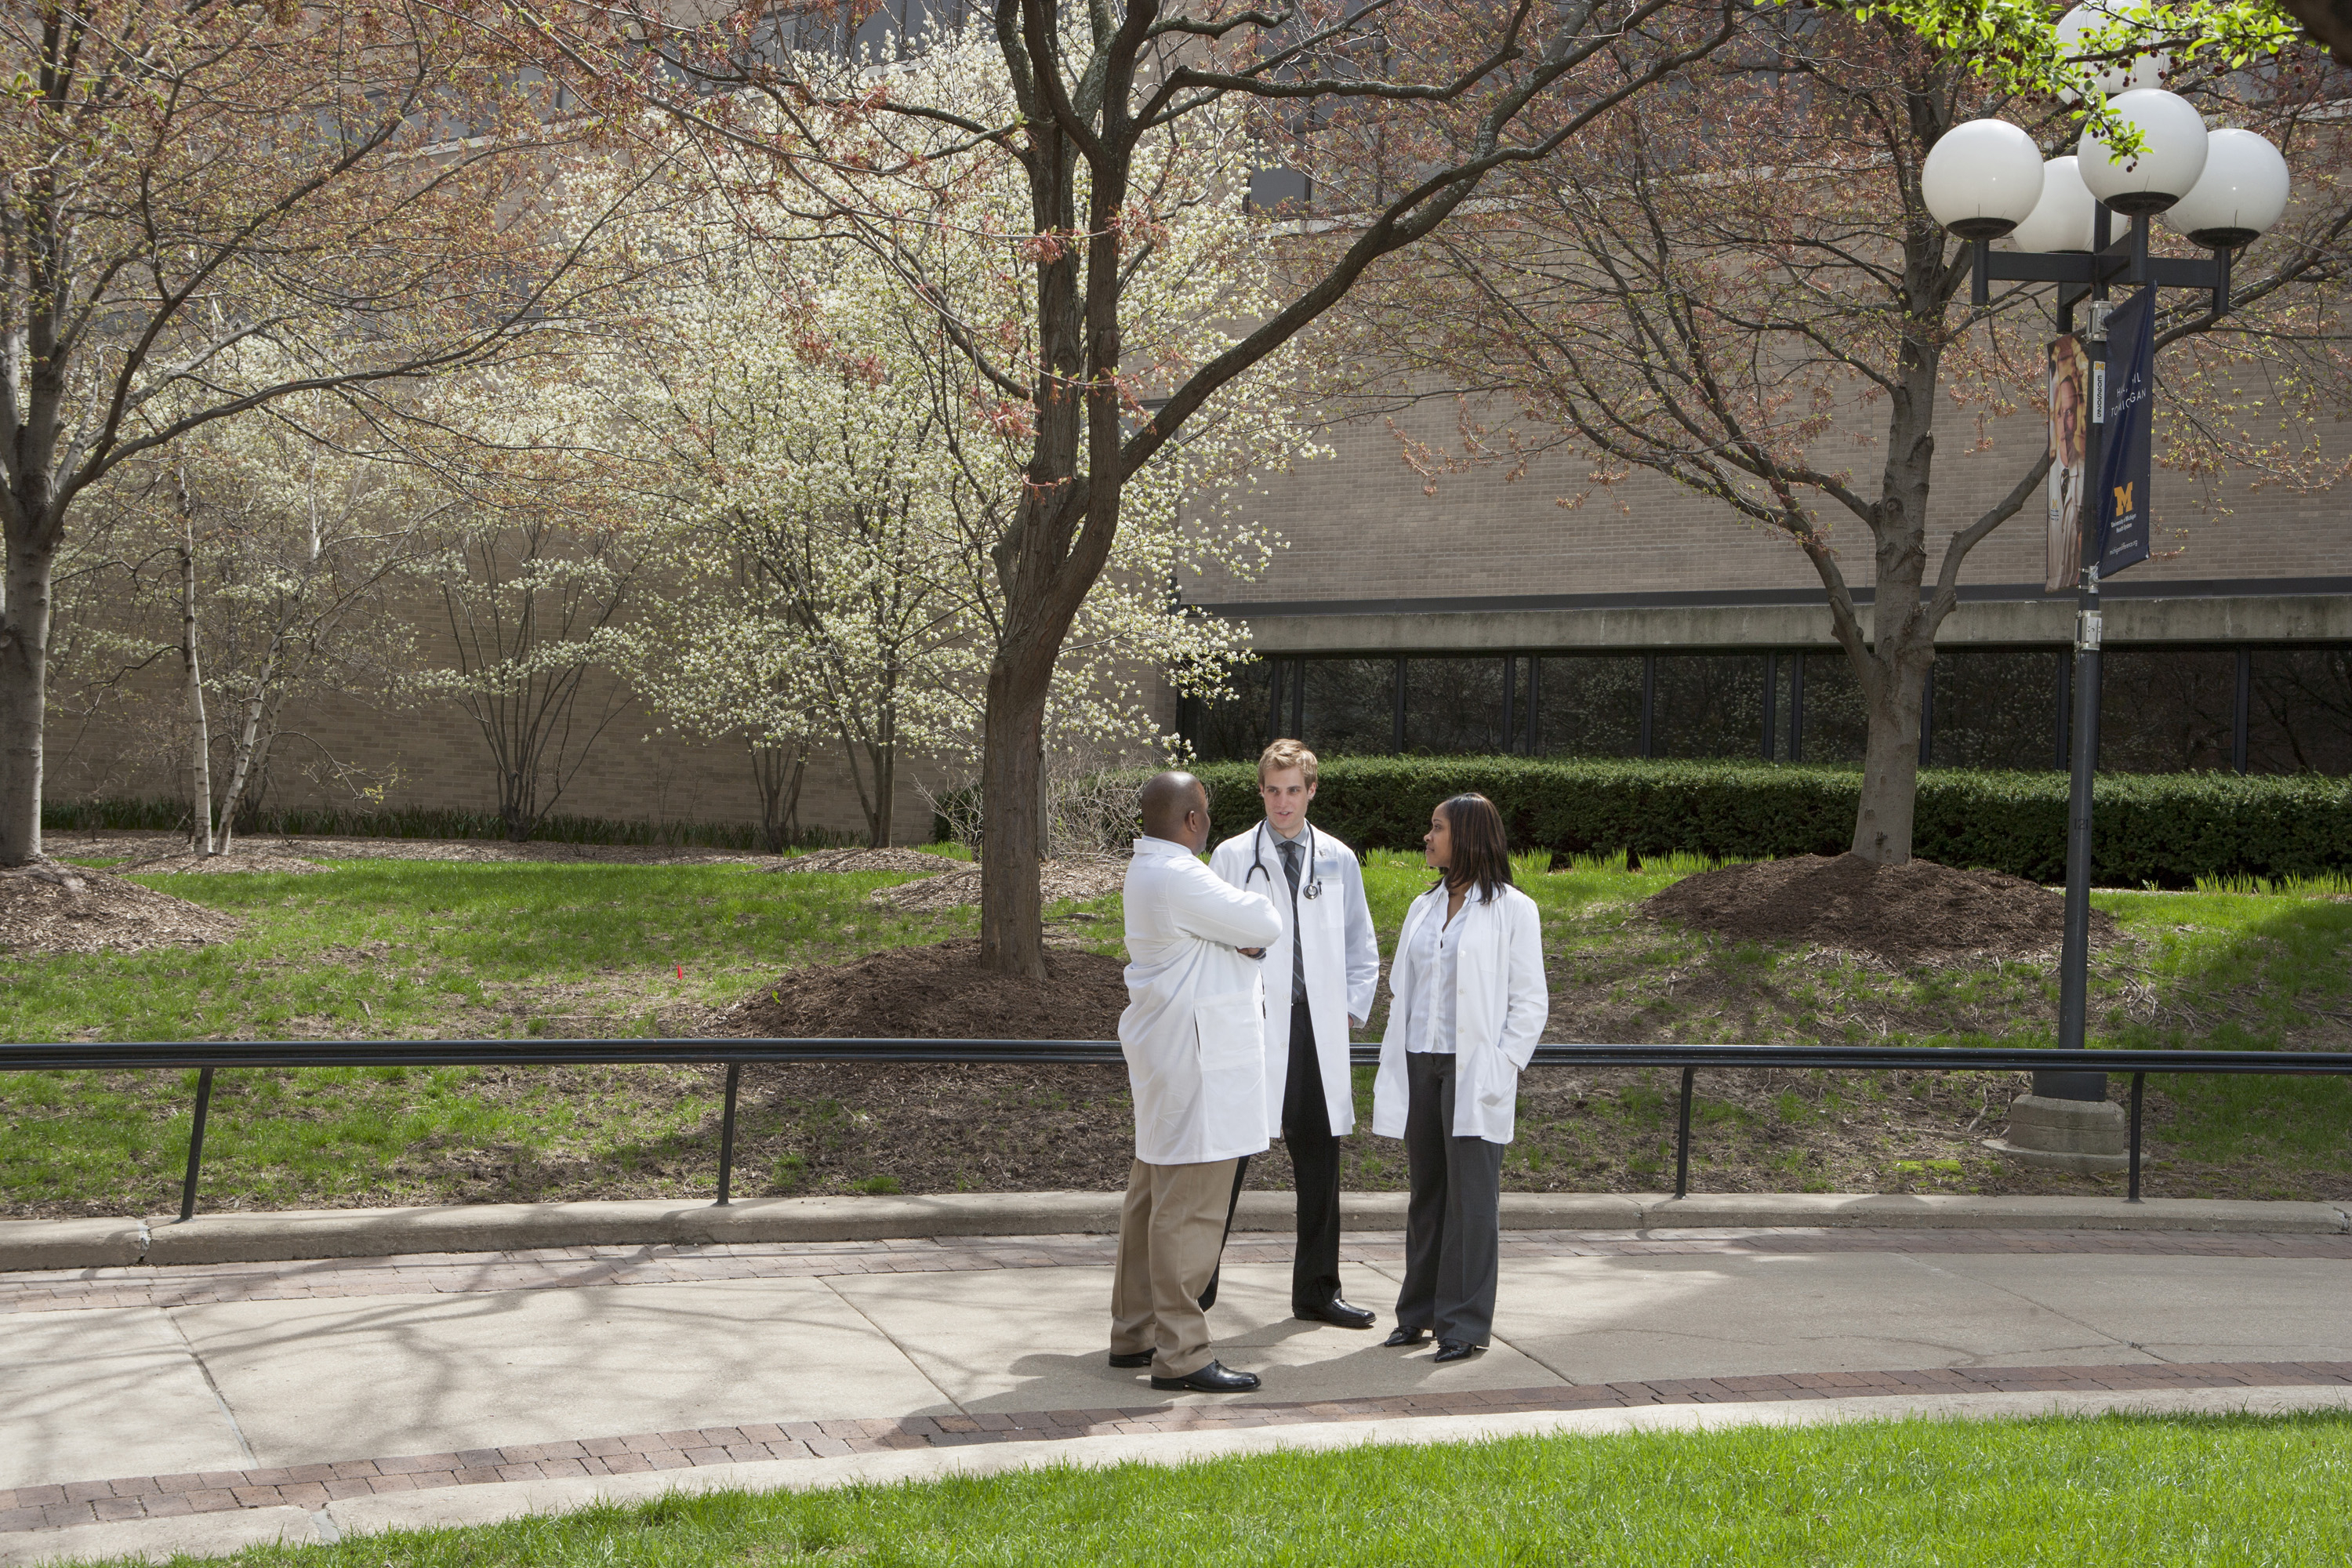 VANDERBILT UNIVERSITY SCHOOL OF NURSING RECOGNIZED BEST SCHOOL OF NURSING BY THE AMERICAN ASSOCIATION OF MEN